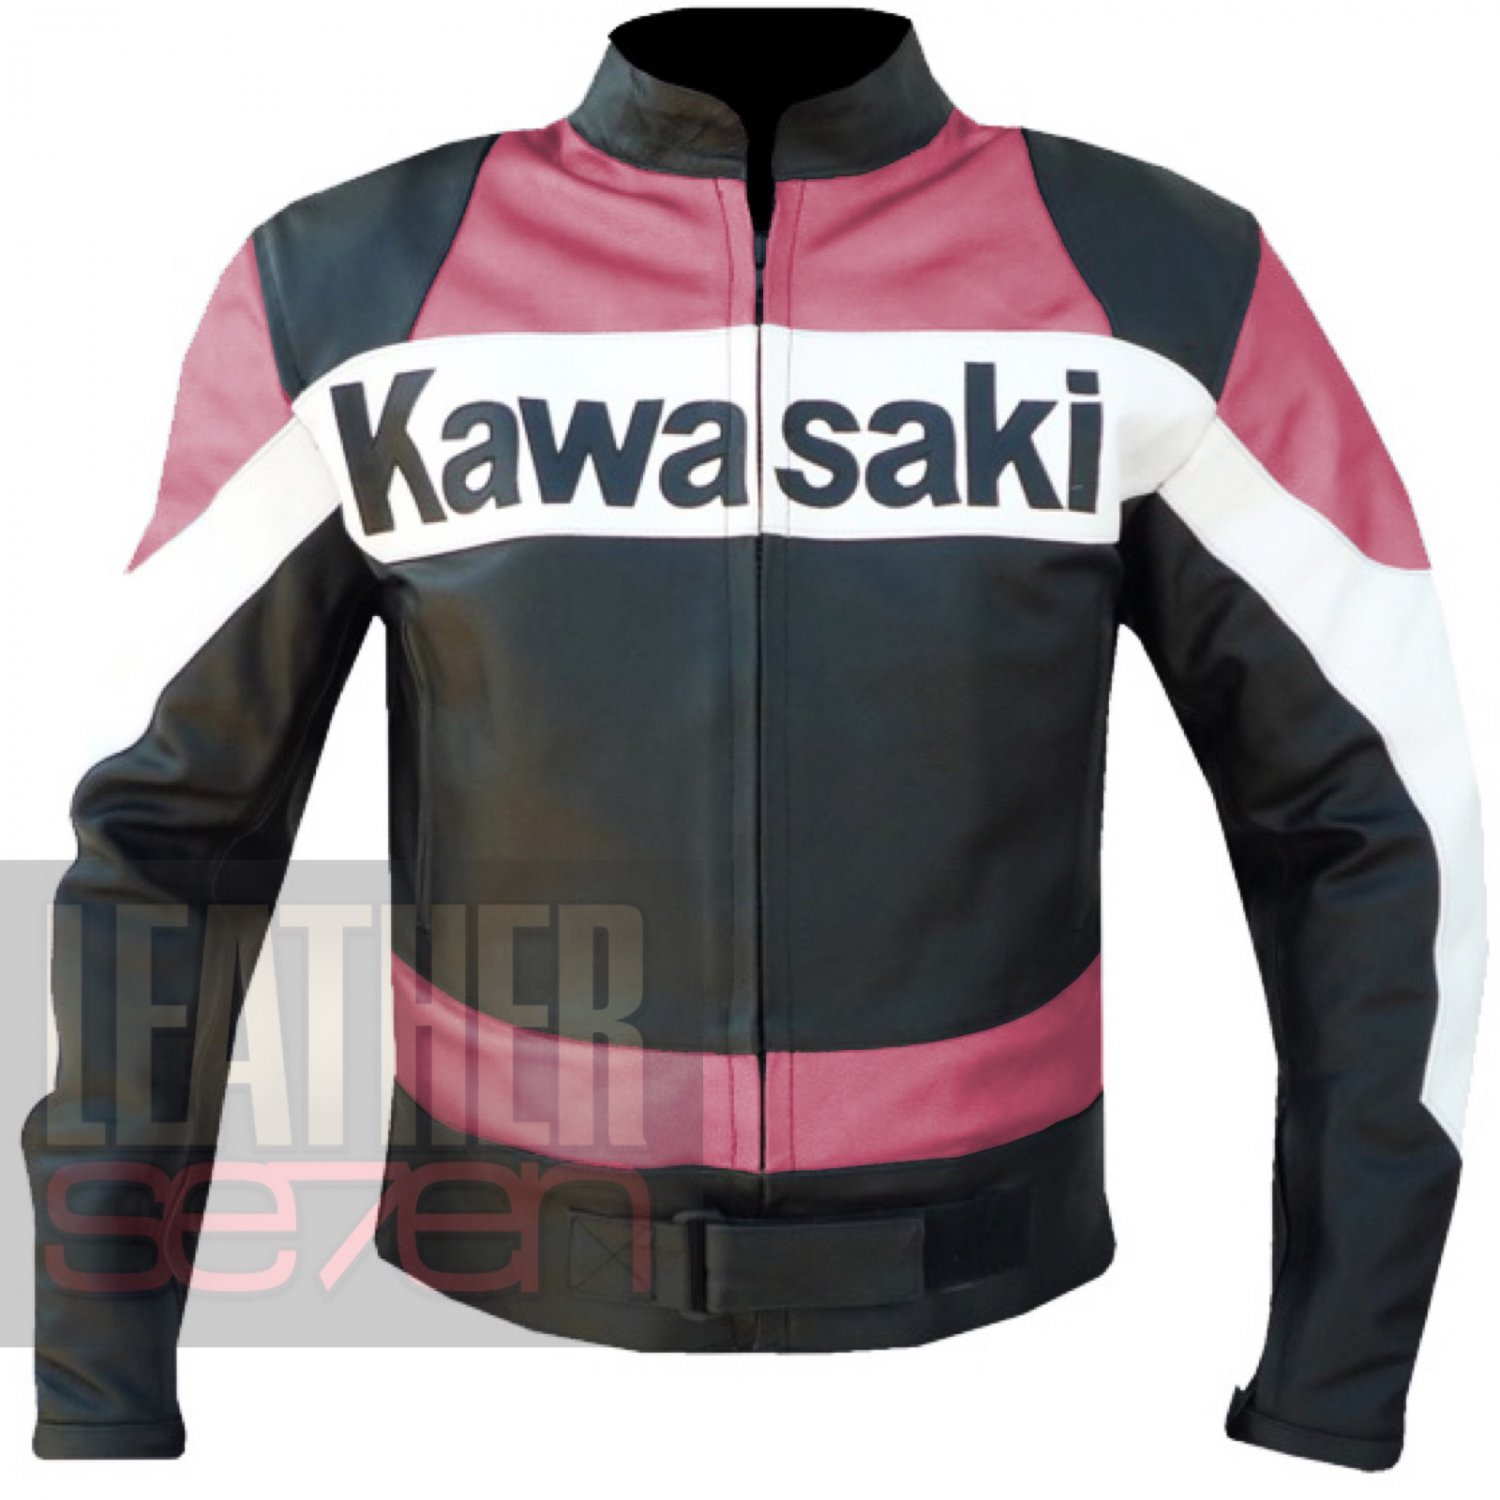 Kawasaki 2020 Pink Biker Armour Racing Cowhide Leather Jacket